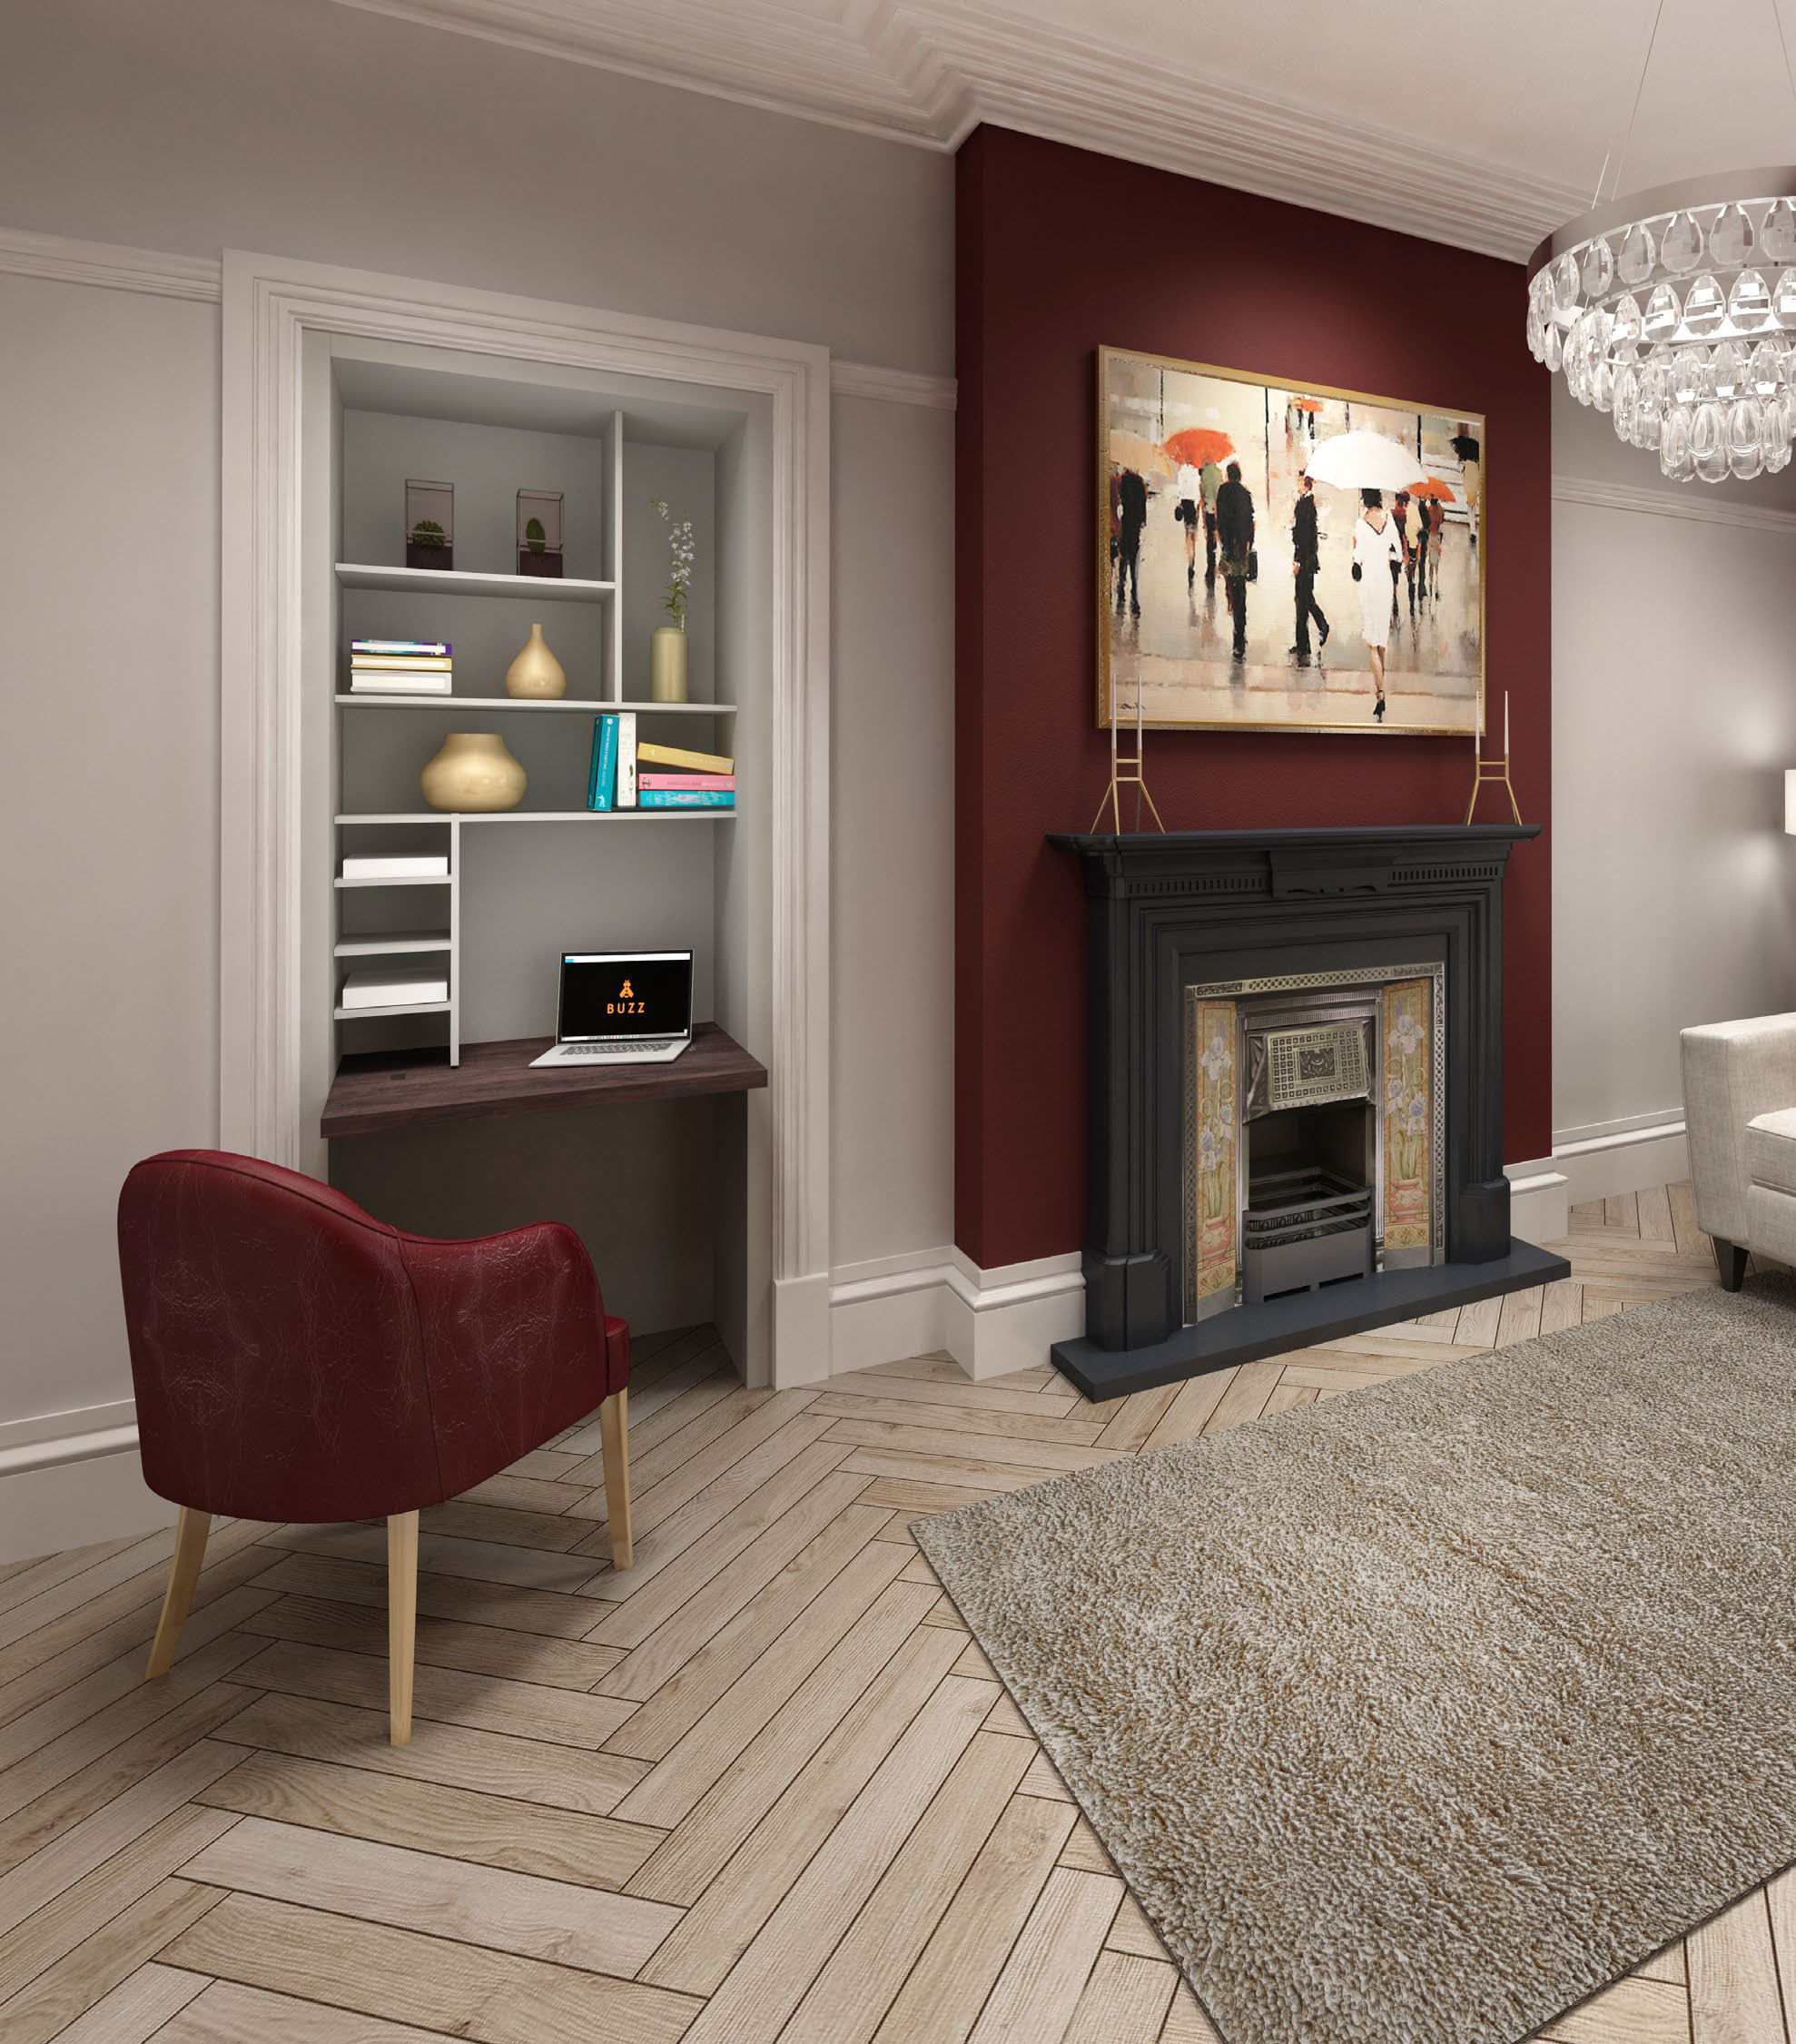 A buzz home office Beespoke alcove office small space in a rendered room